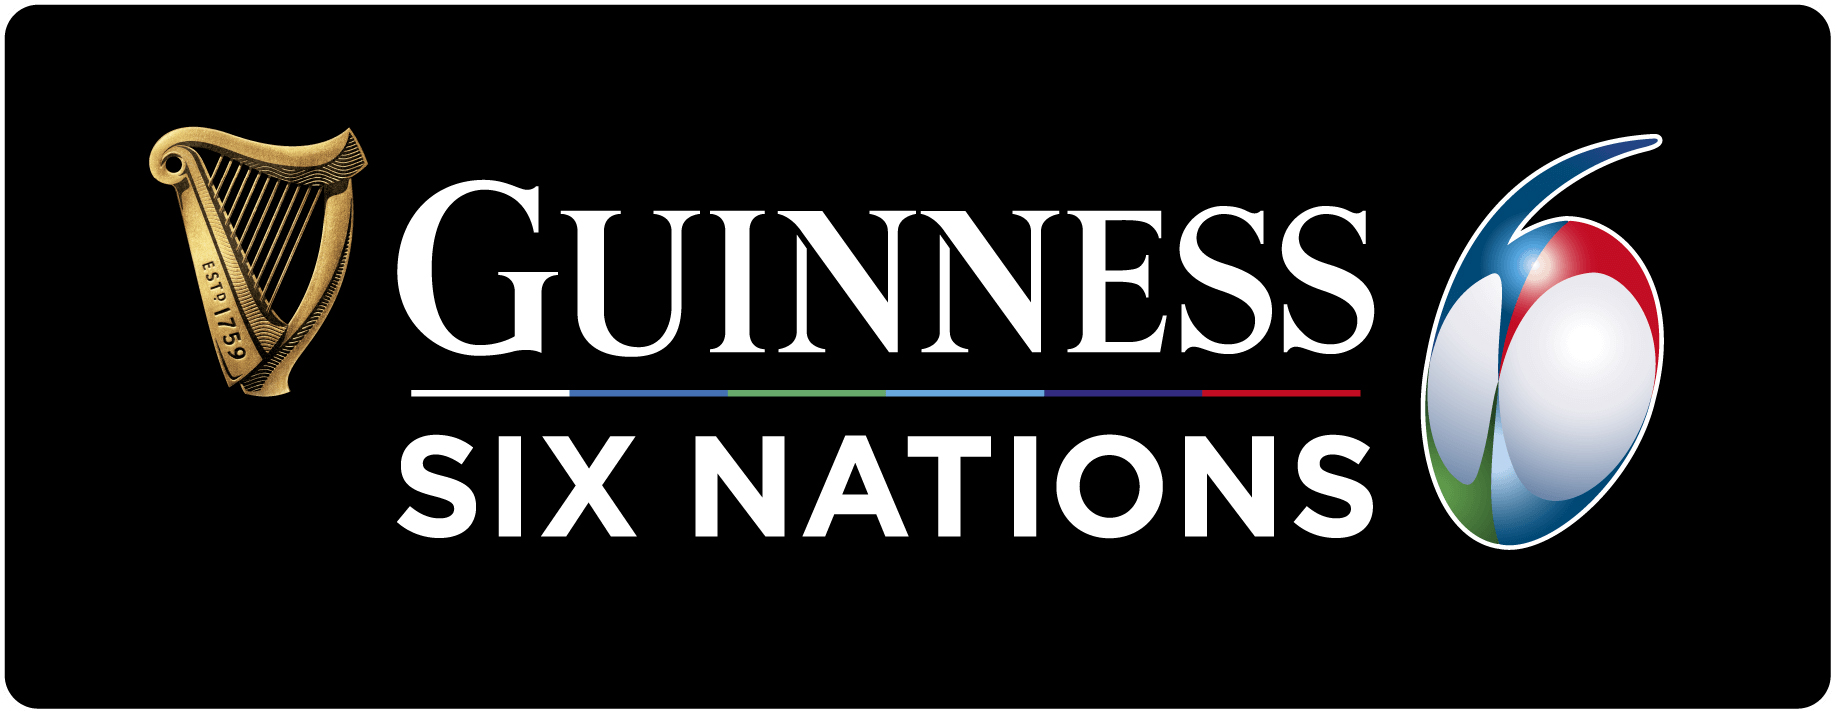 nbc sports presents round two of 2021 guinness six nations championship rugby this weekend  with